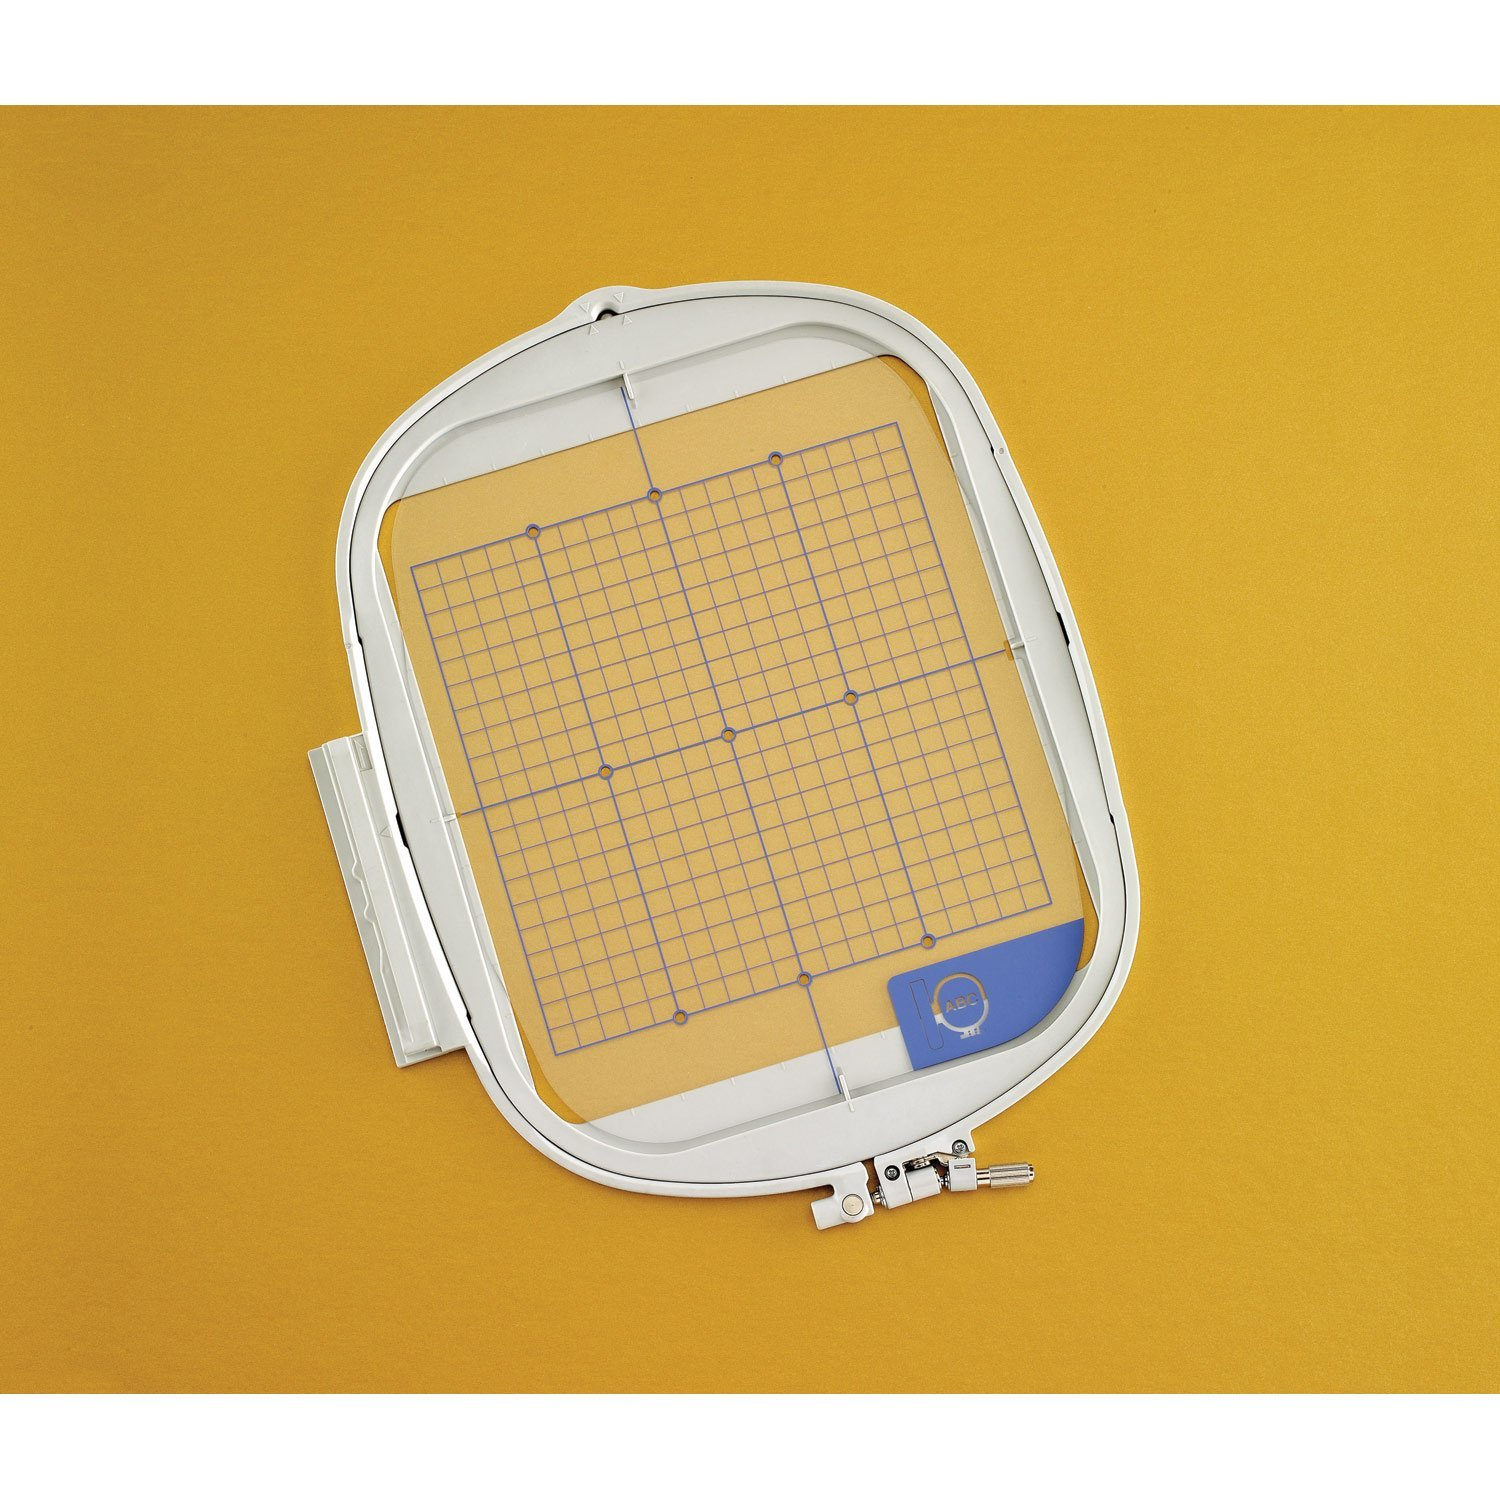 BL Embroidery Hoop & Grid 8 x 8 (200x200mm)